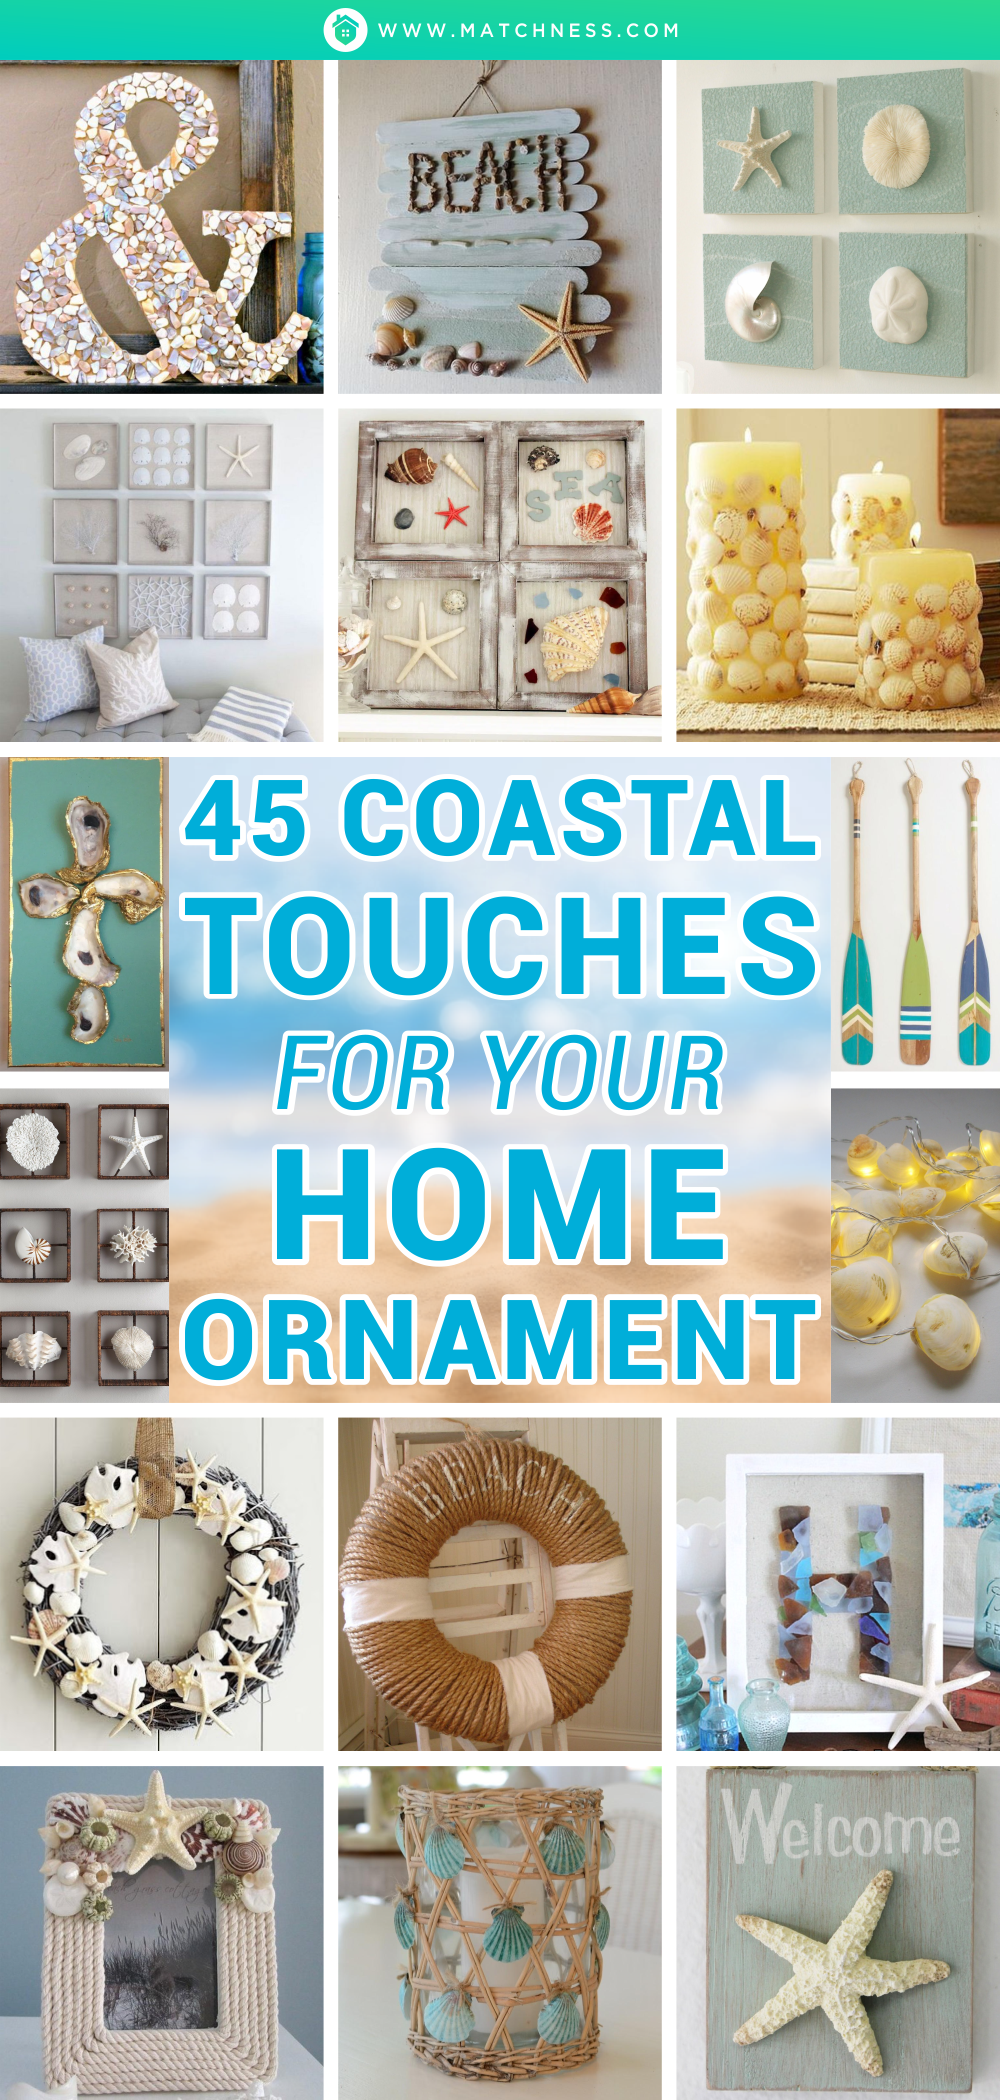 45-coastal-touches-for-your-home-ornament1